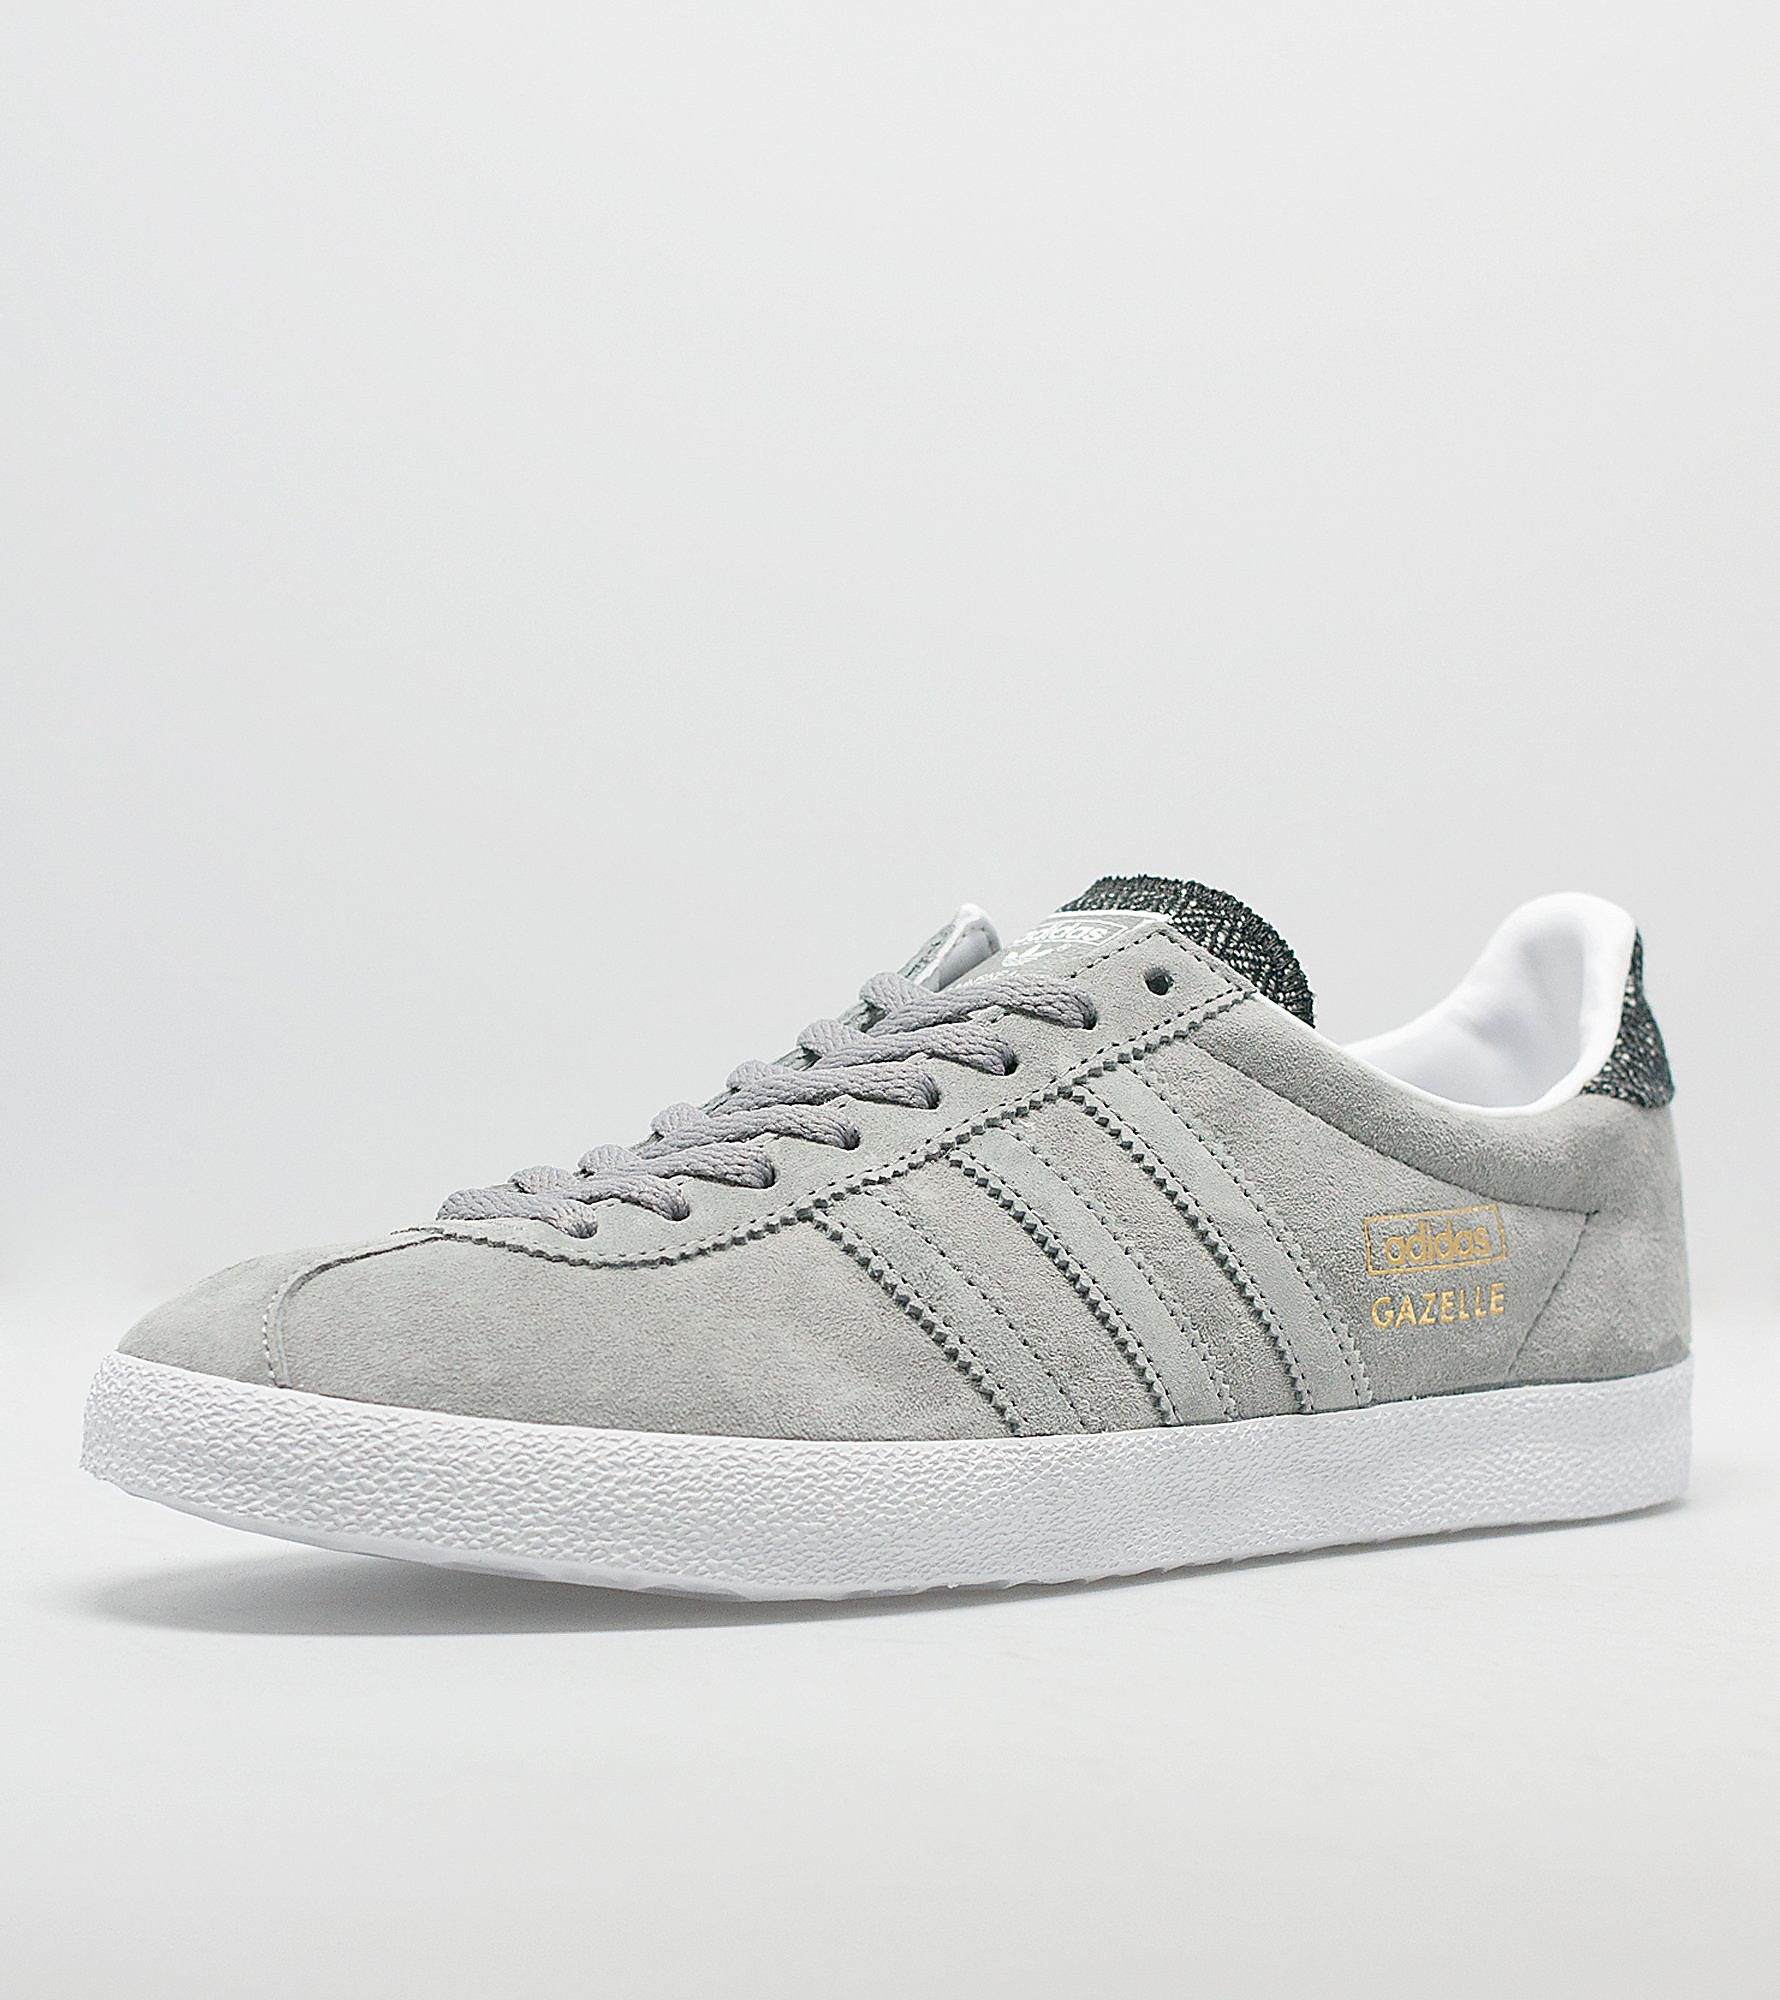 Pegajoso Observación preocupación  Buy adidas originals gazelle og leather white > OFF64% Discounted